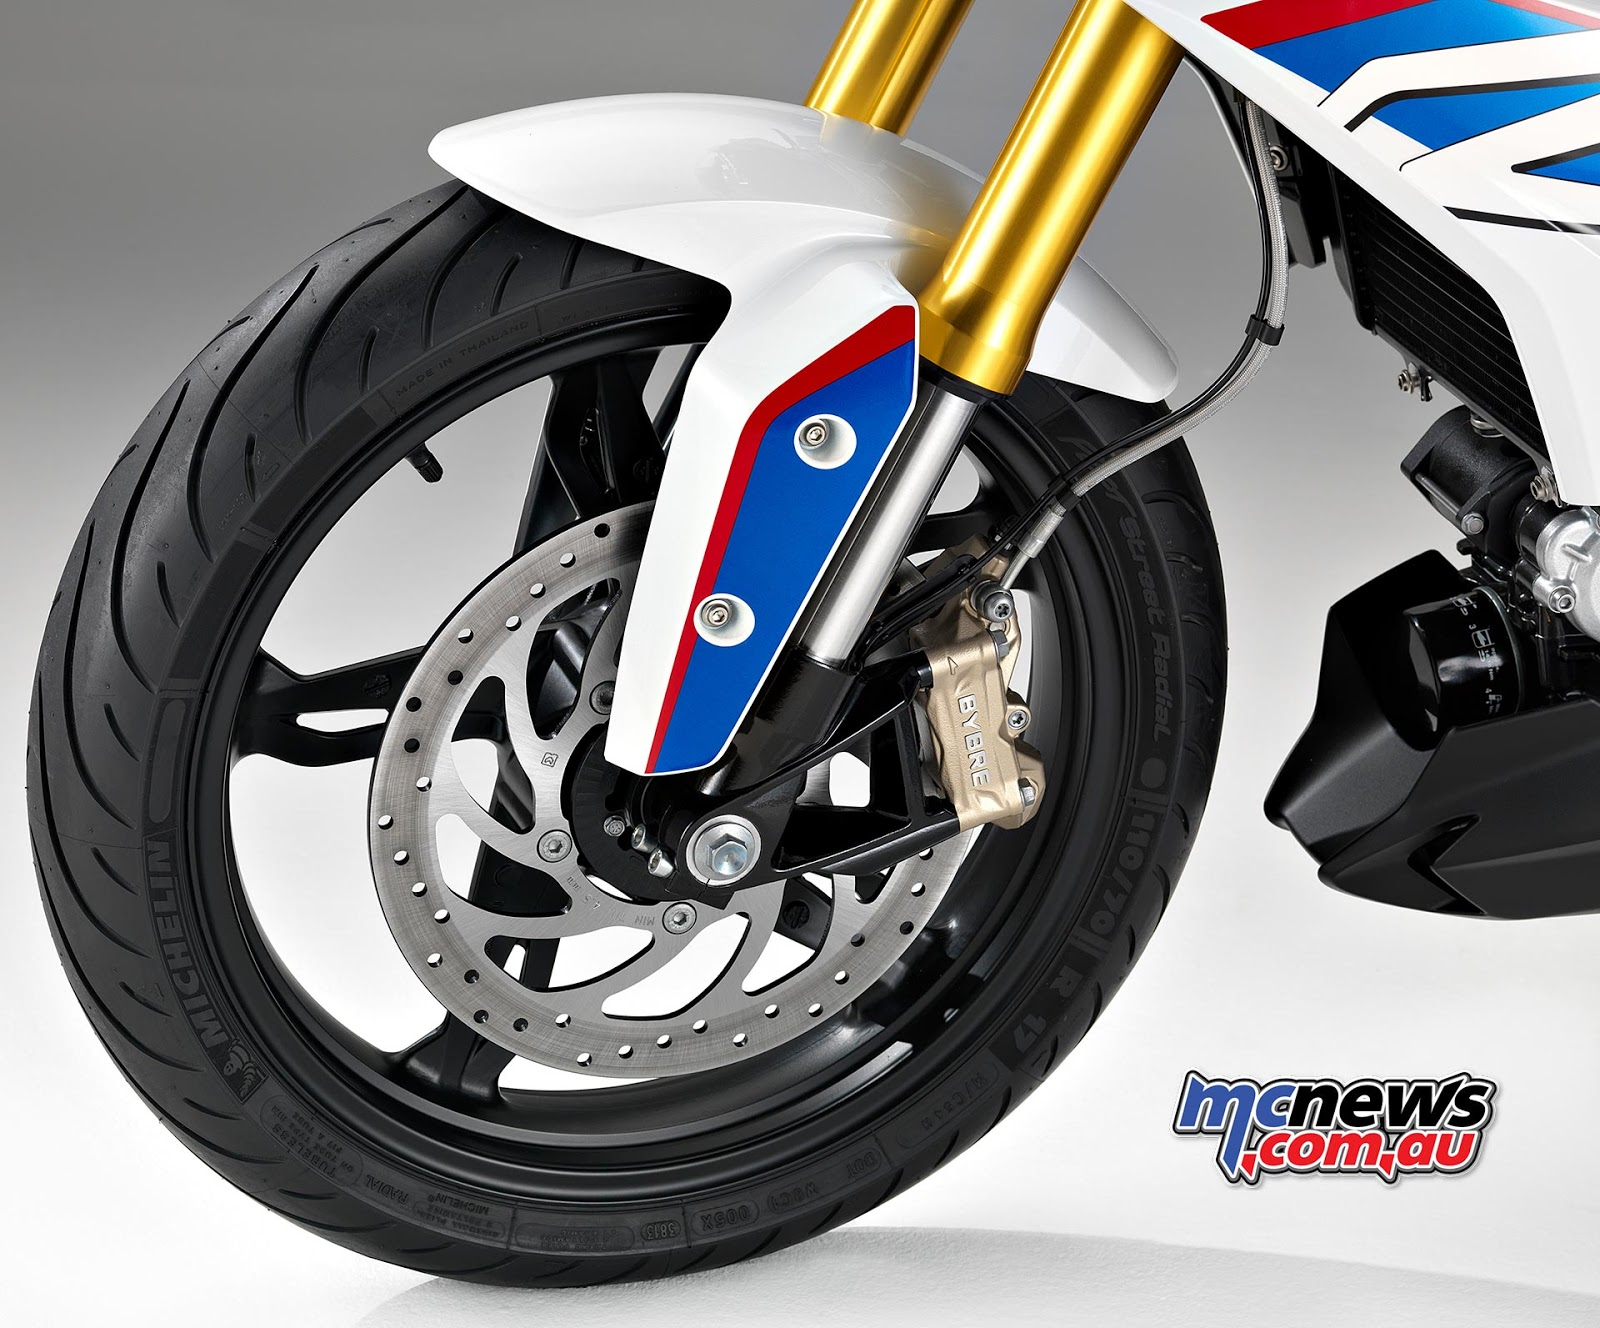 Bmw G310r Bike Mileage Specifications Full Review The Car Front Wheel Bikes 2 Stopping Power On Will Come From 300mm Single Disc Brake And 240mm Rear With Piston Floating Caliper In This